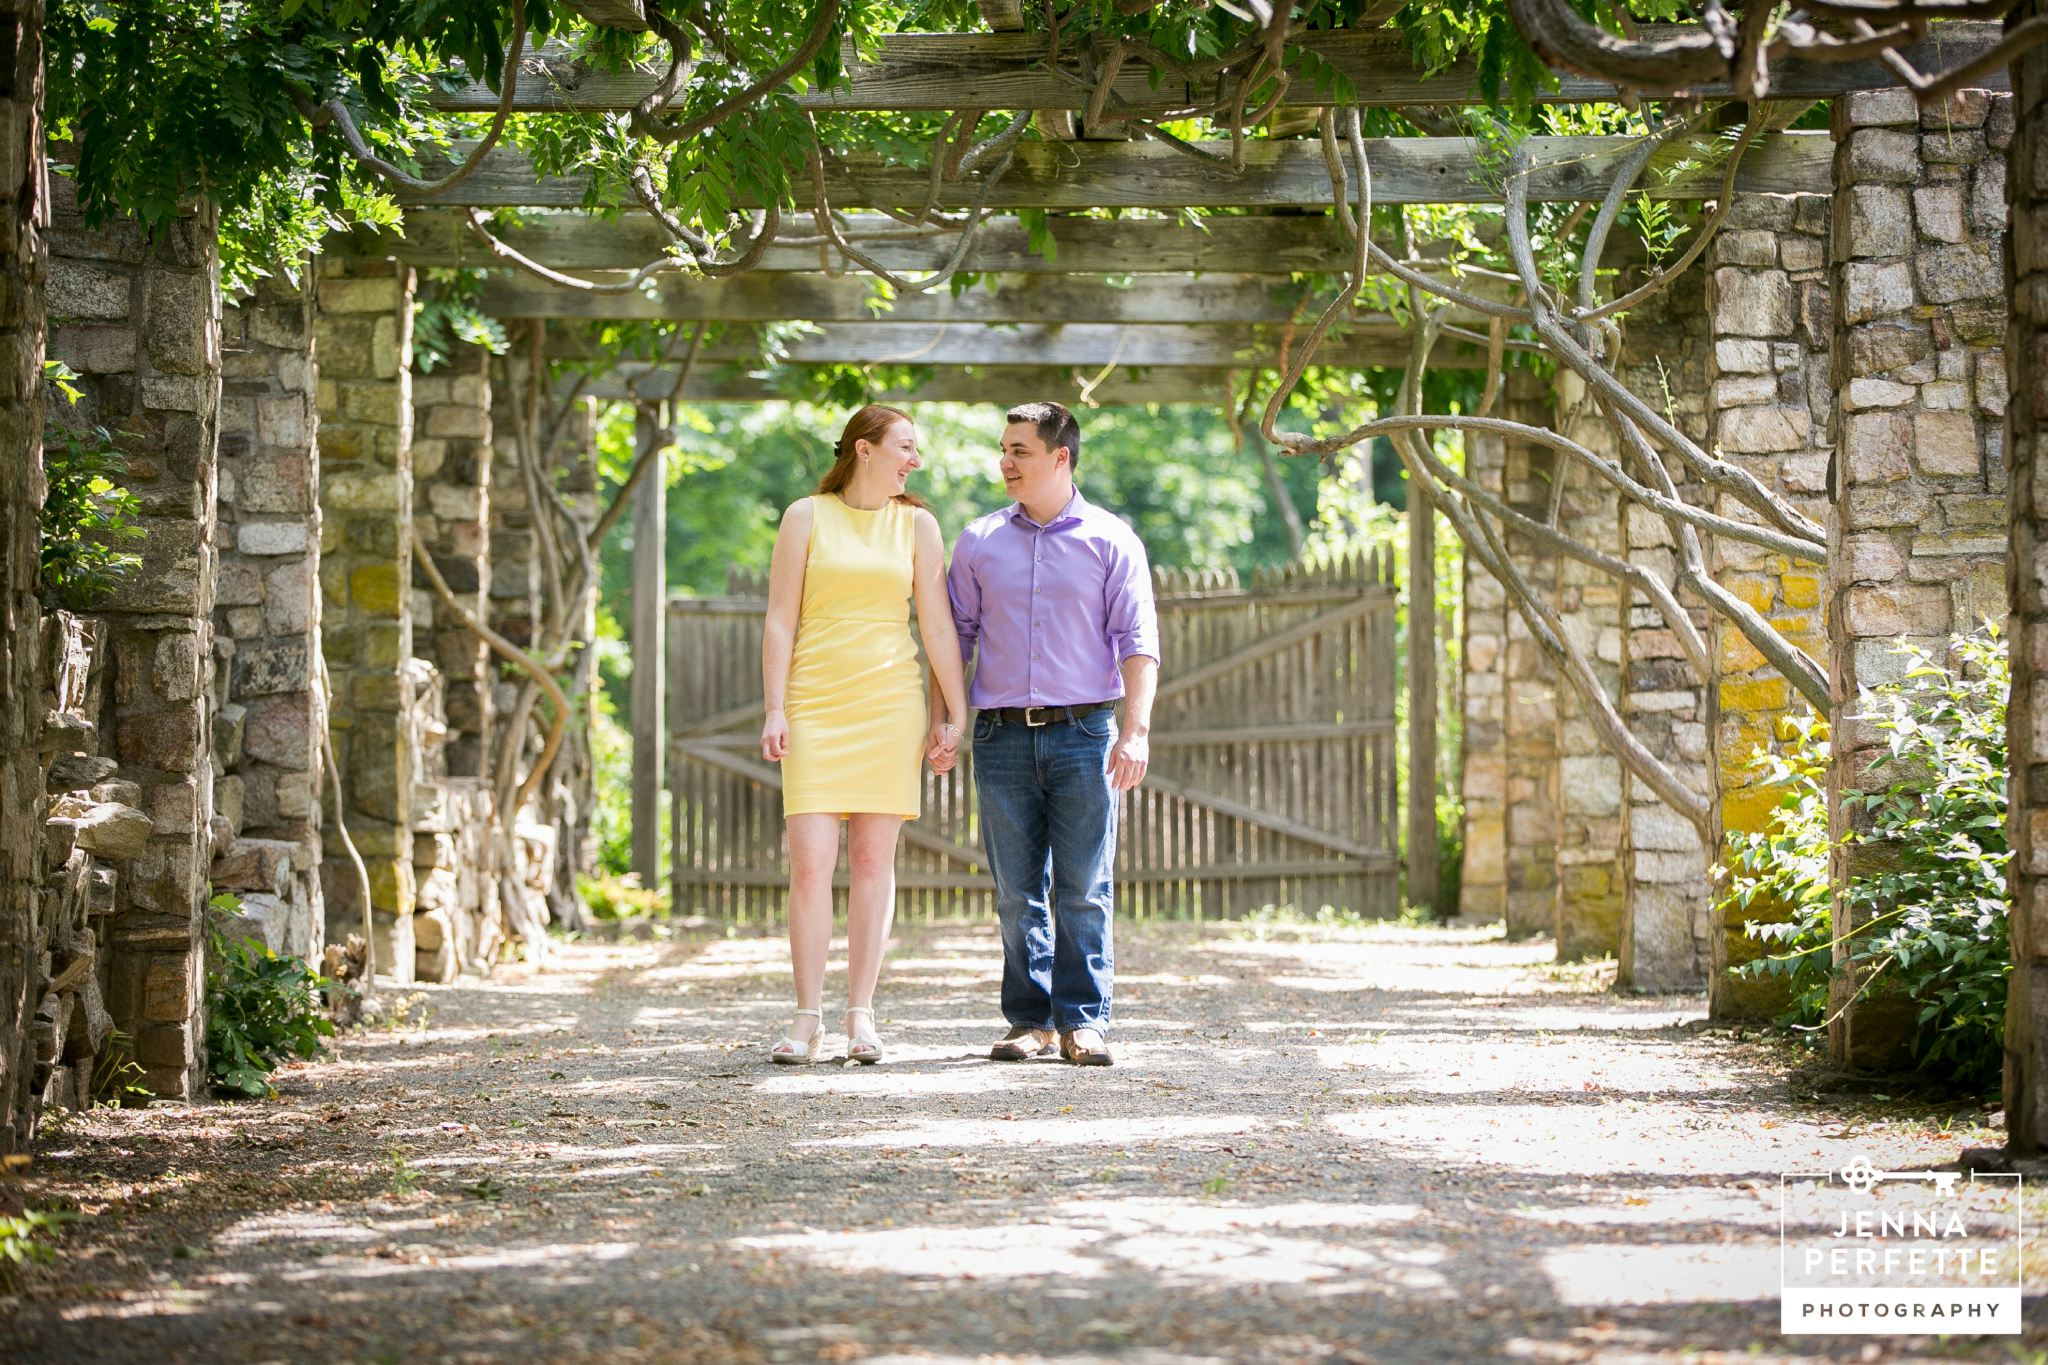 Choosing a location for your engagement session - parks farms wineries gardens in new jersey